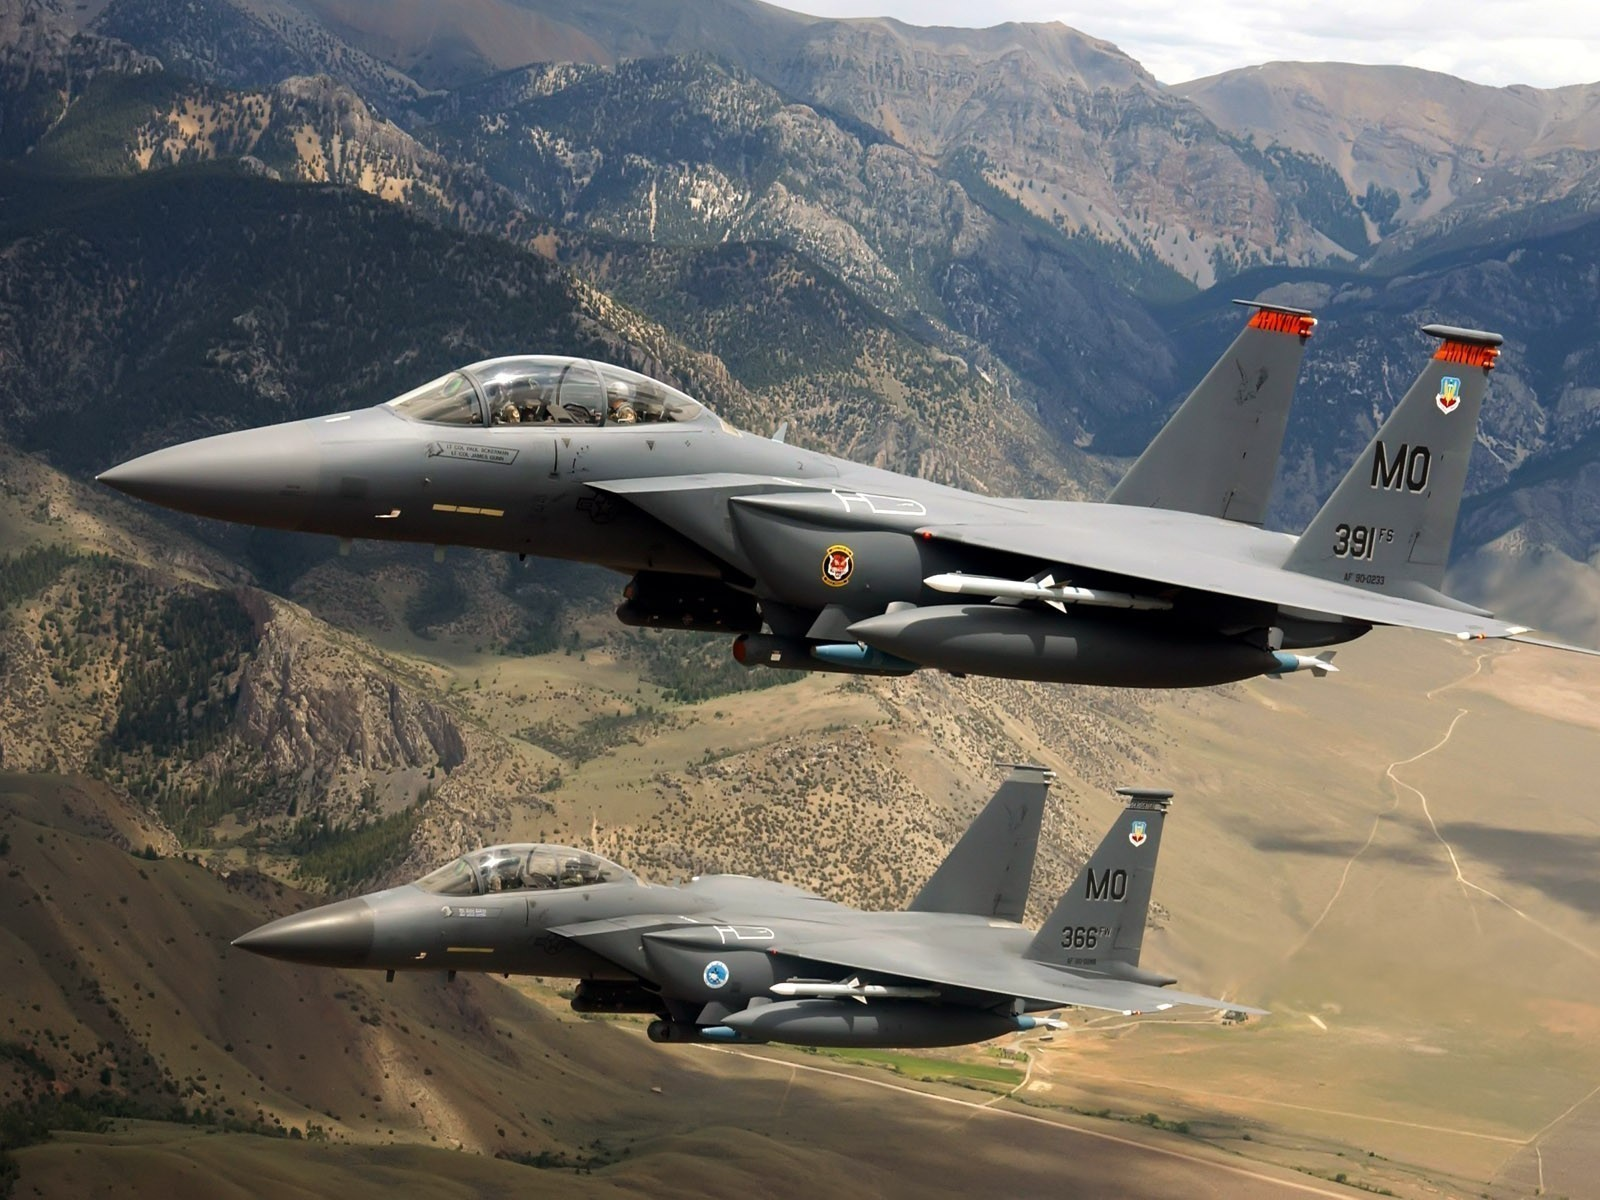 Aircraft f-15 eagle HD Wallpaper